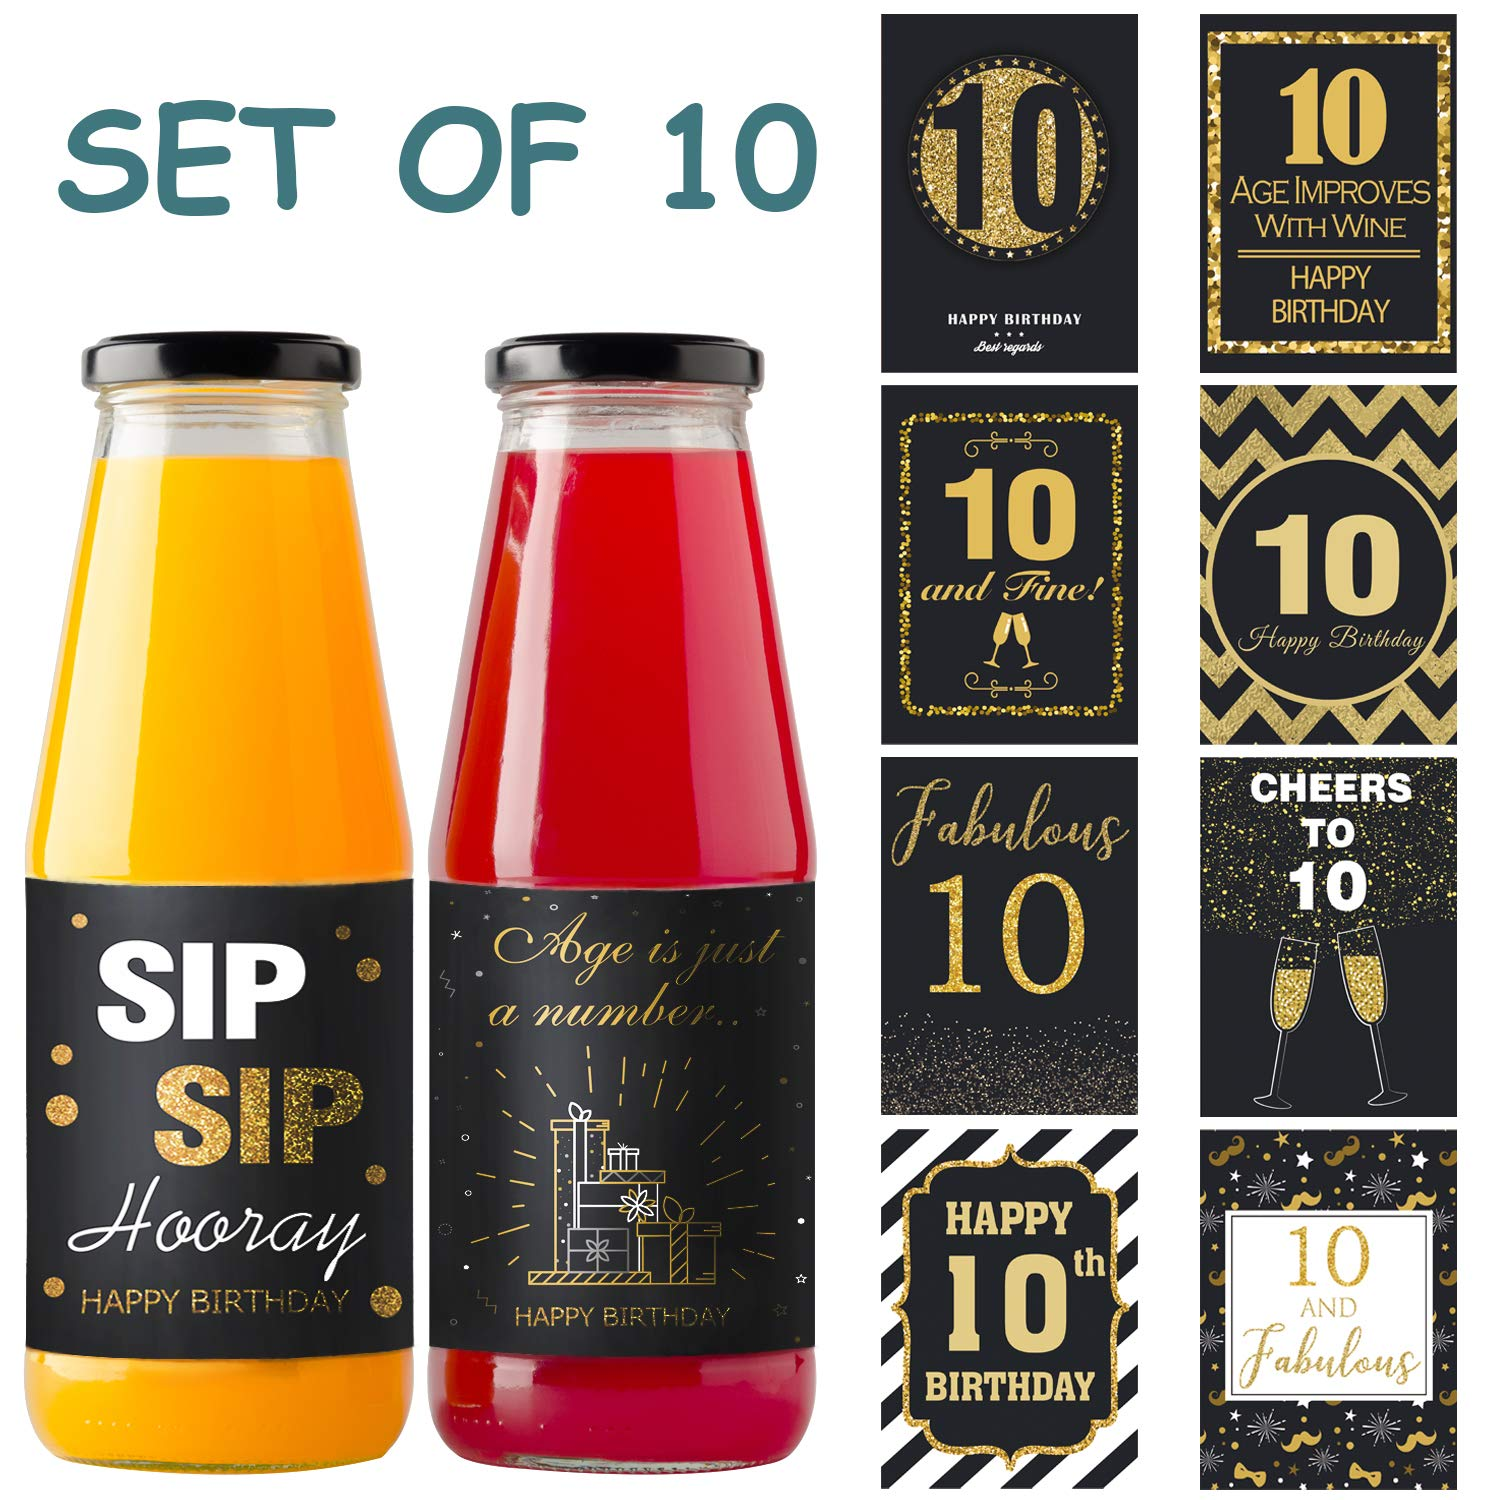 Happy 10th Birthday Juice Bottle Labels Stickers Gold and Black Cheer to 10 Years Party Decorations Supplies Set of 20